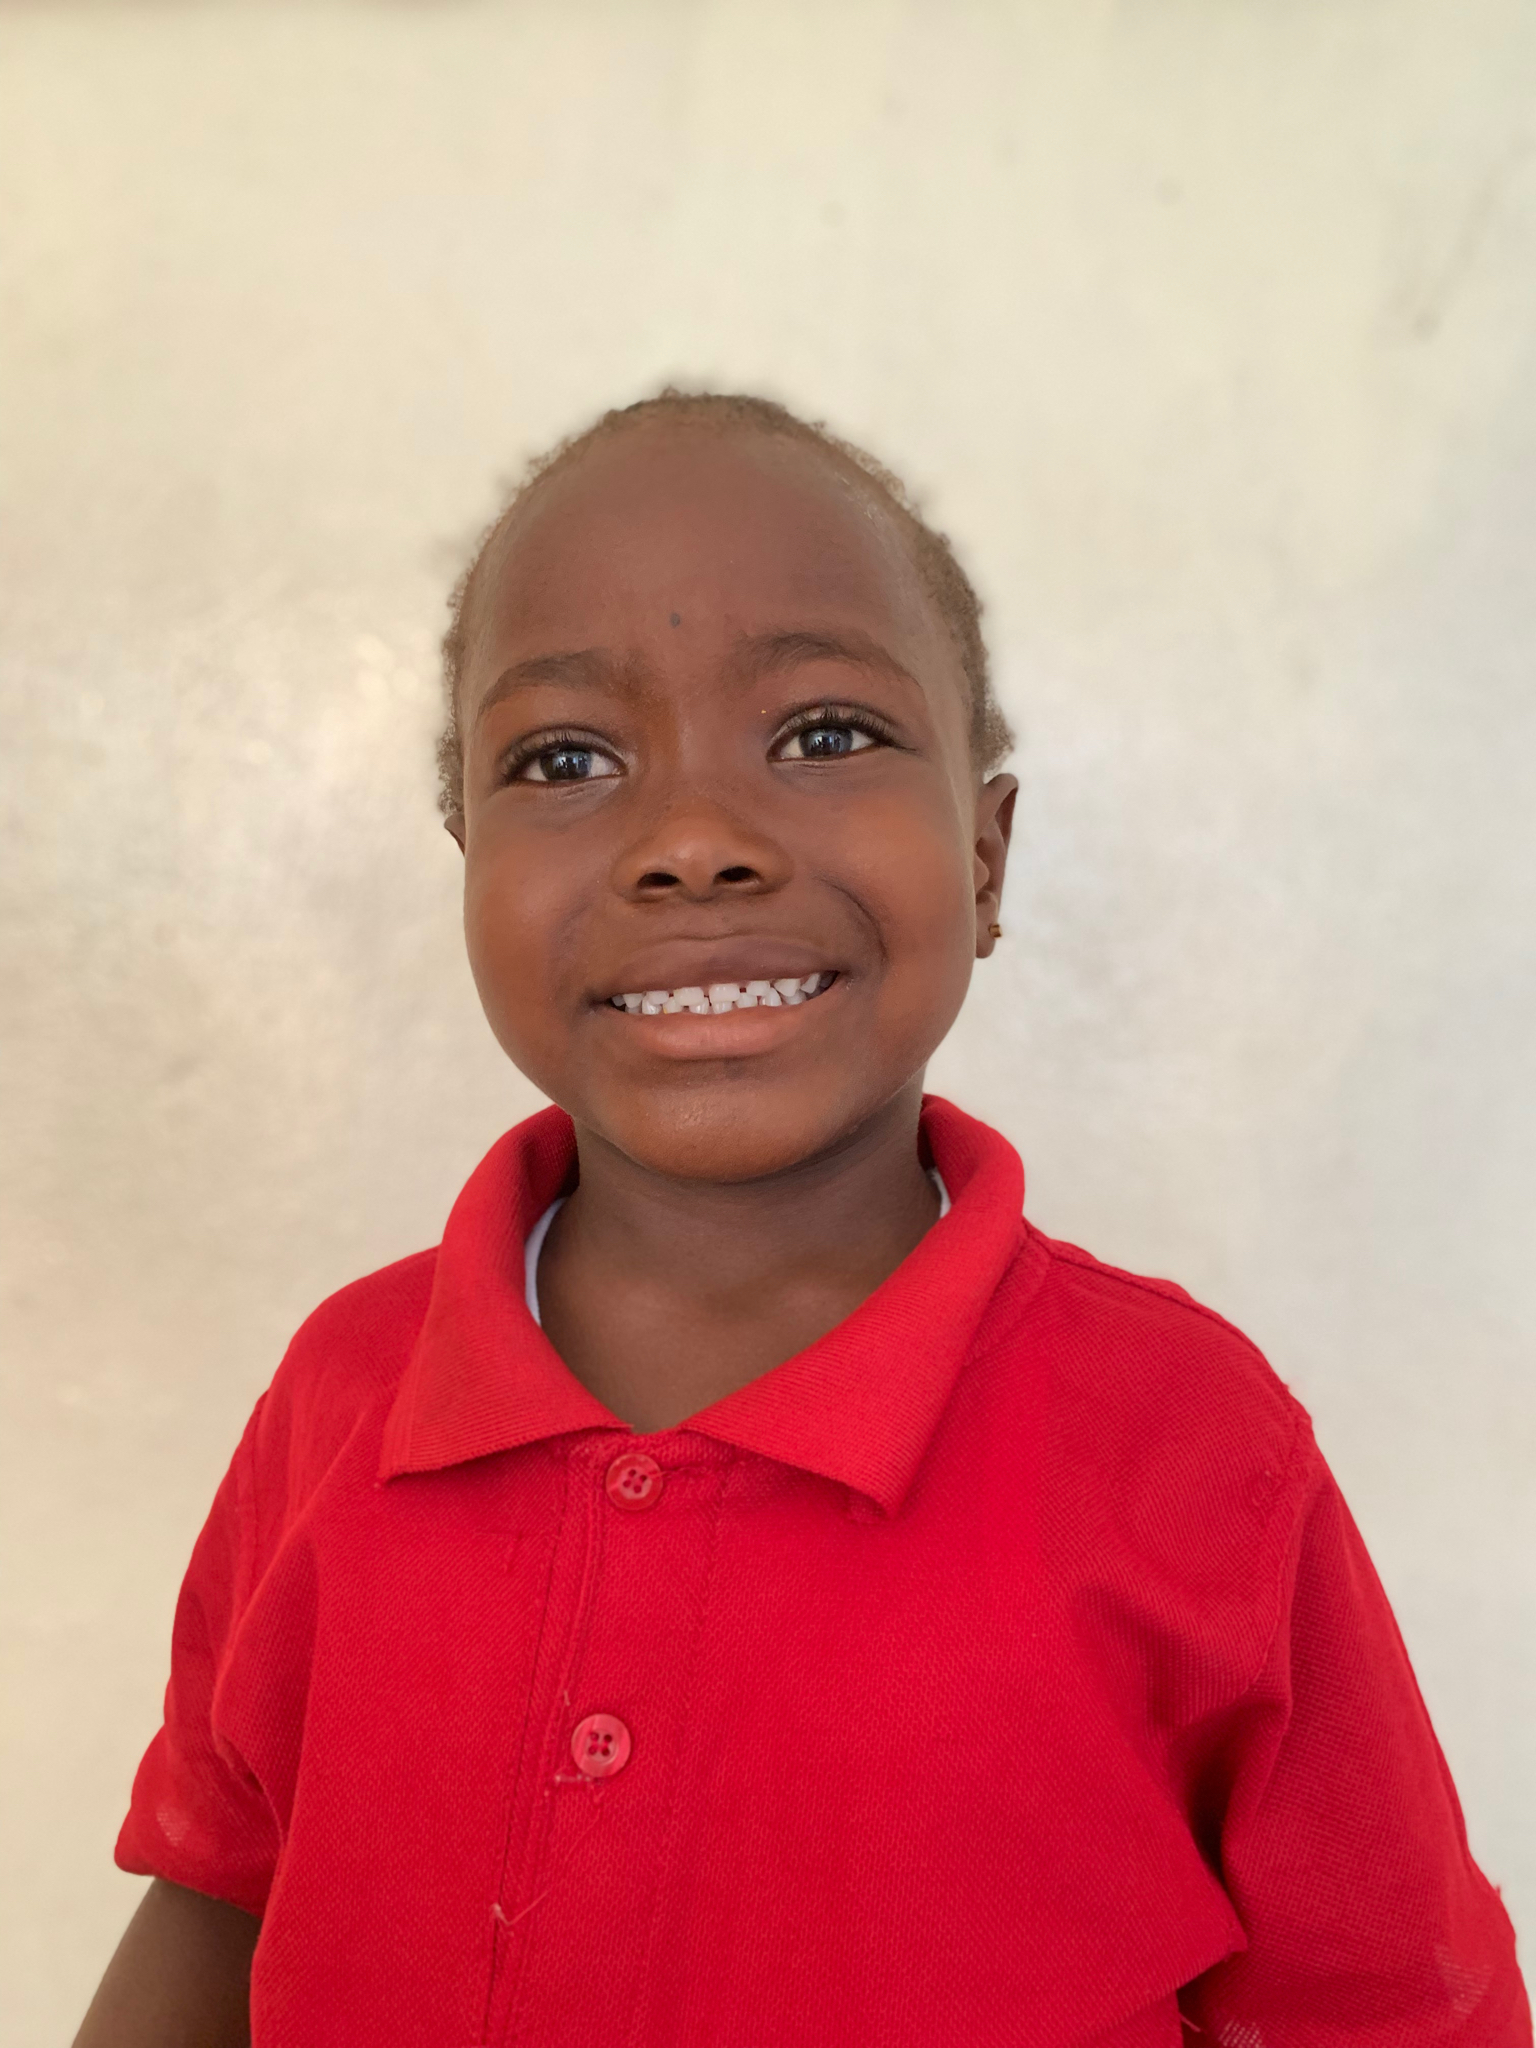 Hello, my name is Belvina Swen. - Belvina is a 4-year-old girl.Belvina lives with her mother, sister, and two brothers; and loves cats, puzzles, and the color red.